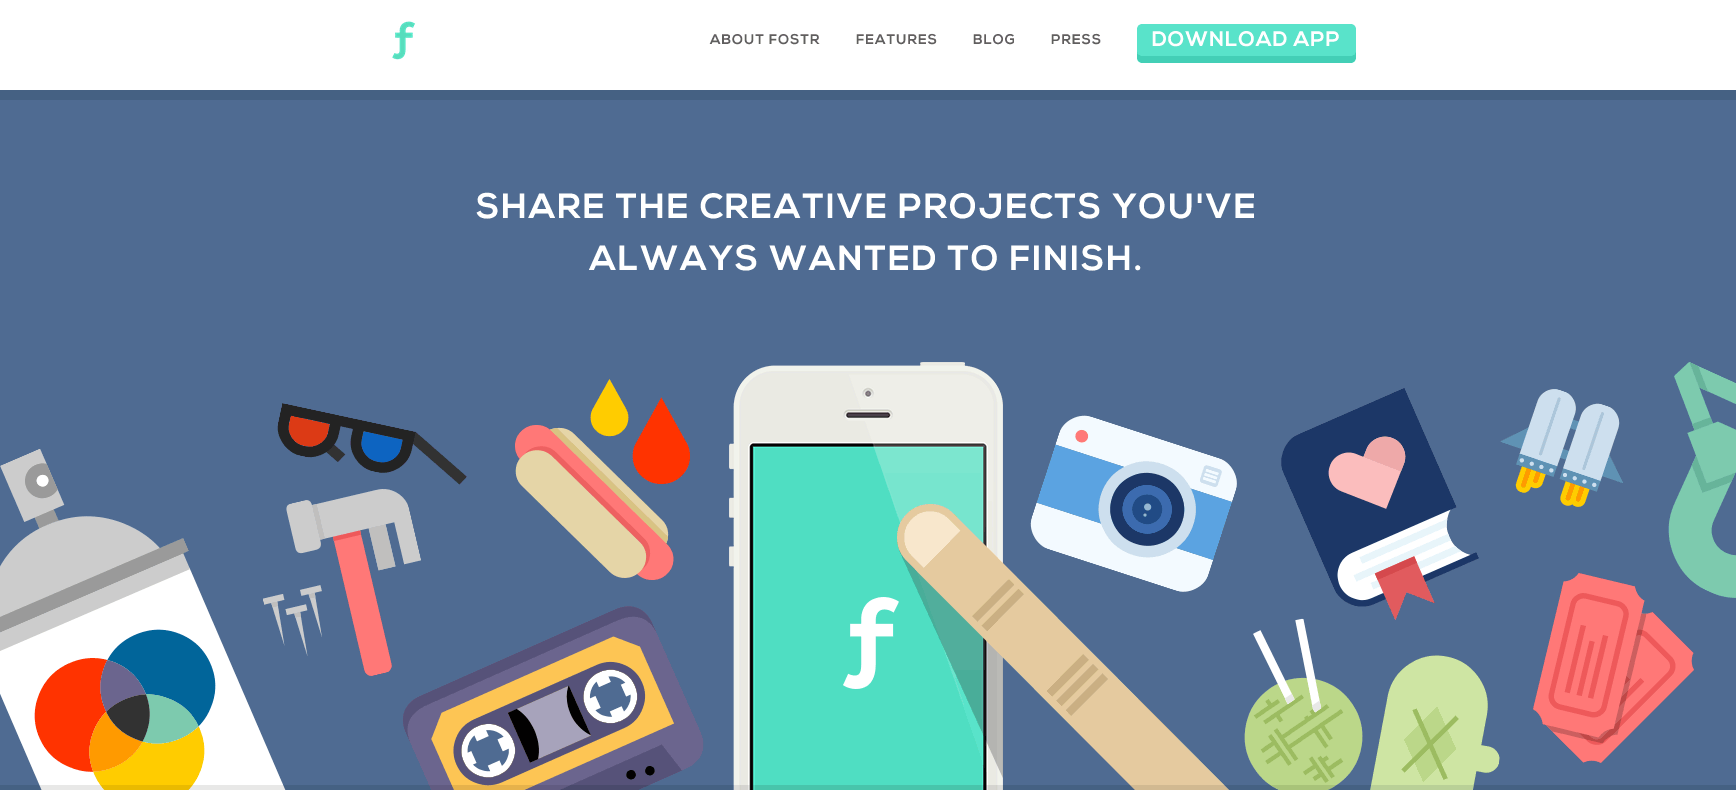 share the creative projects